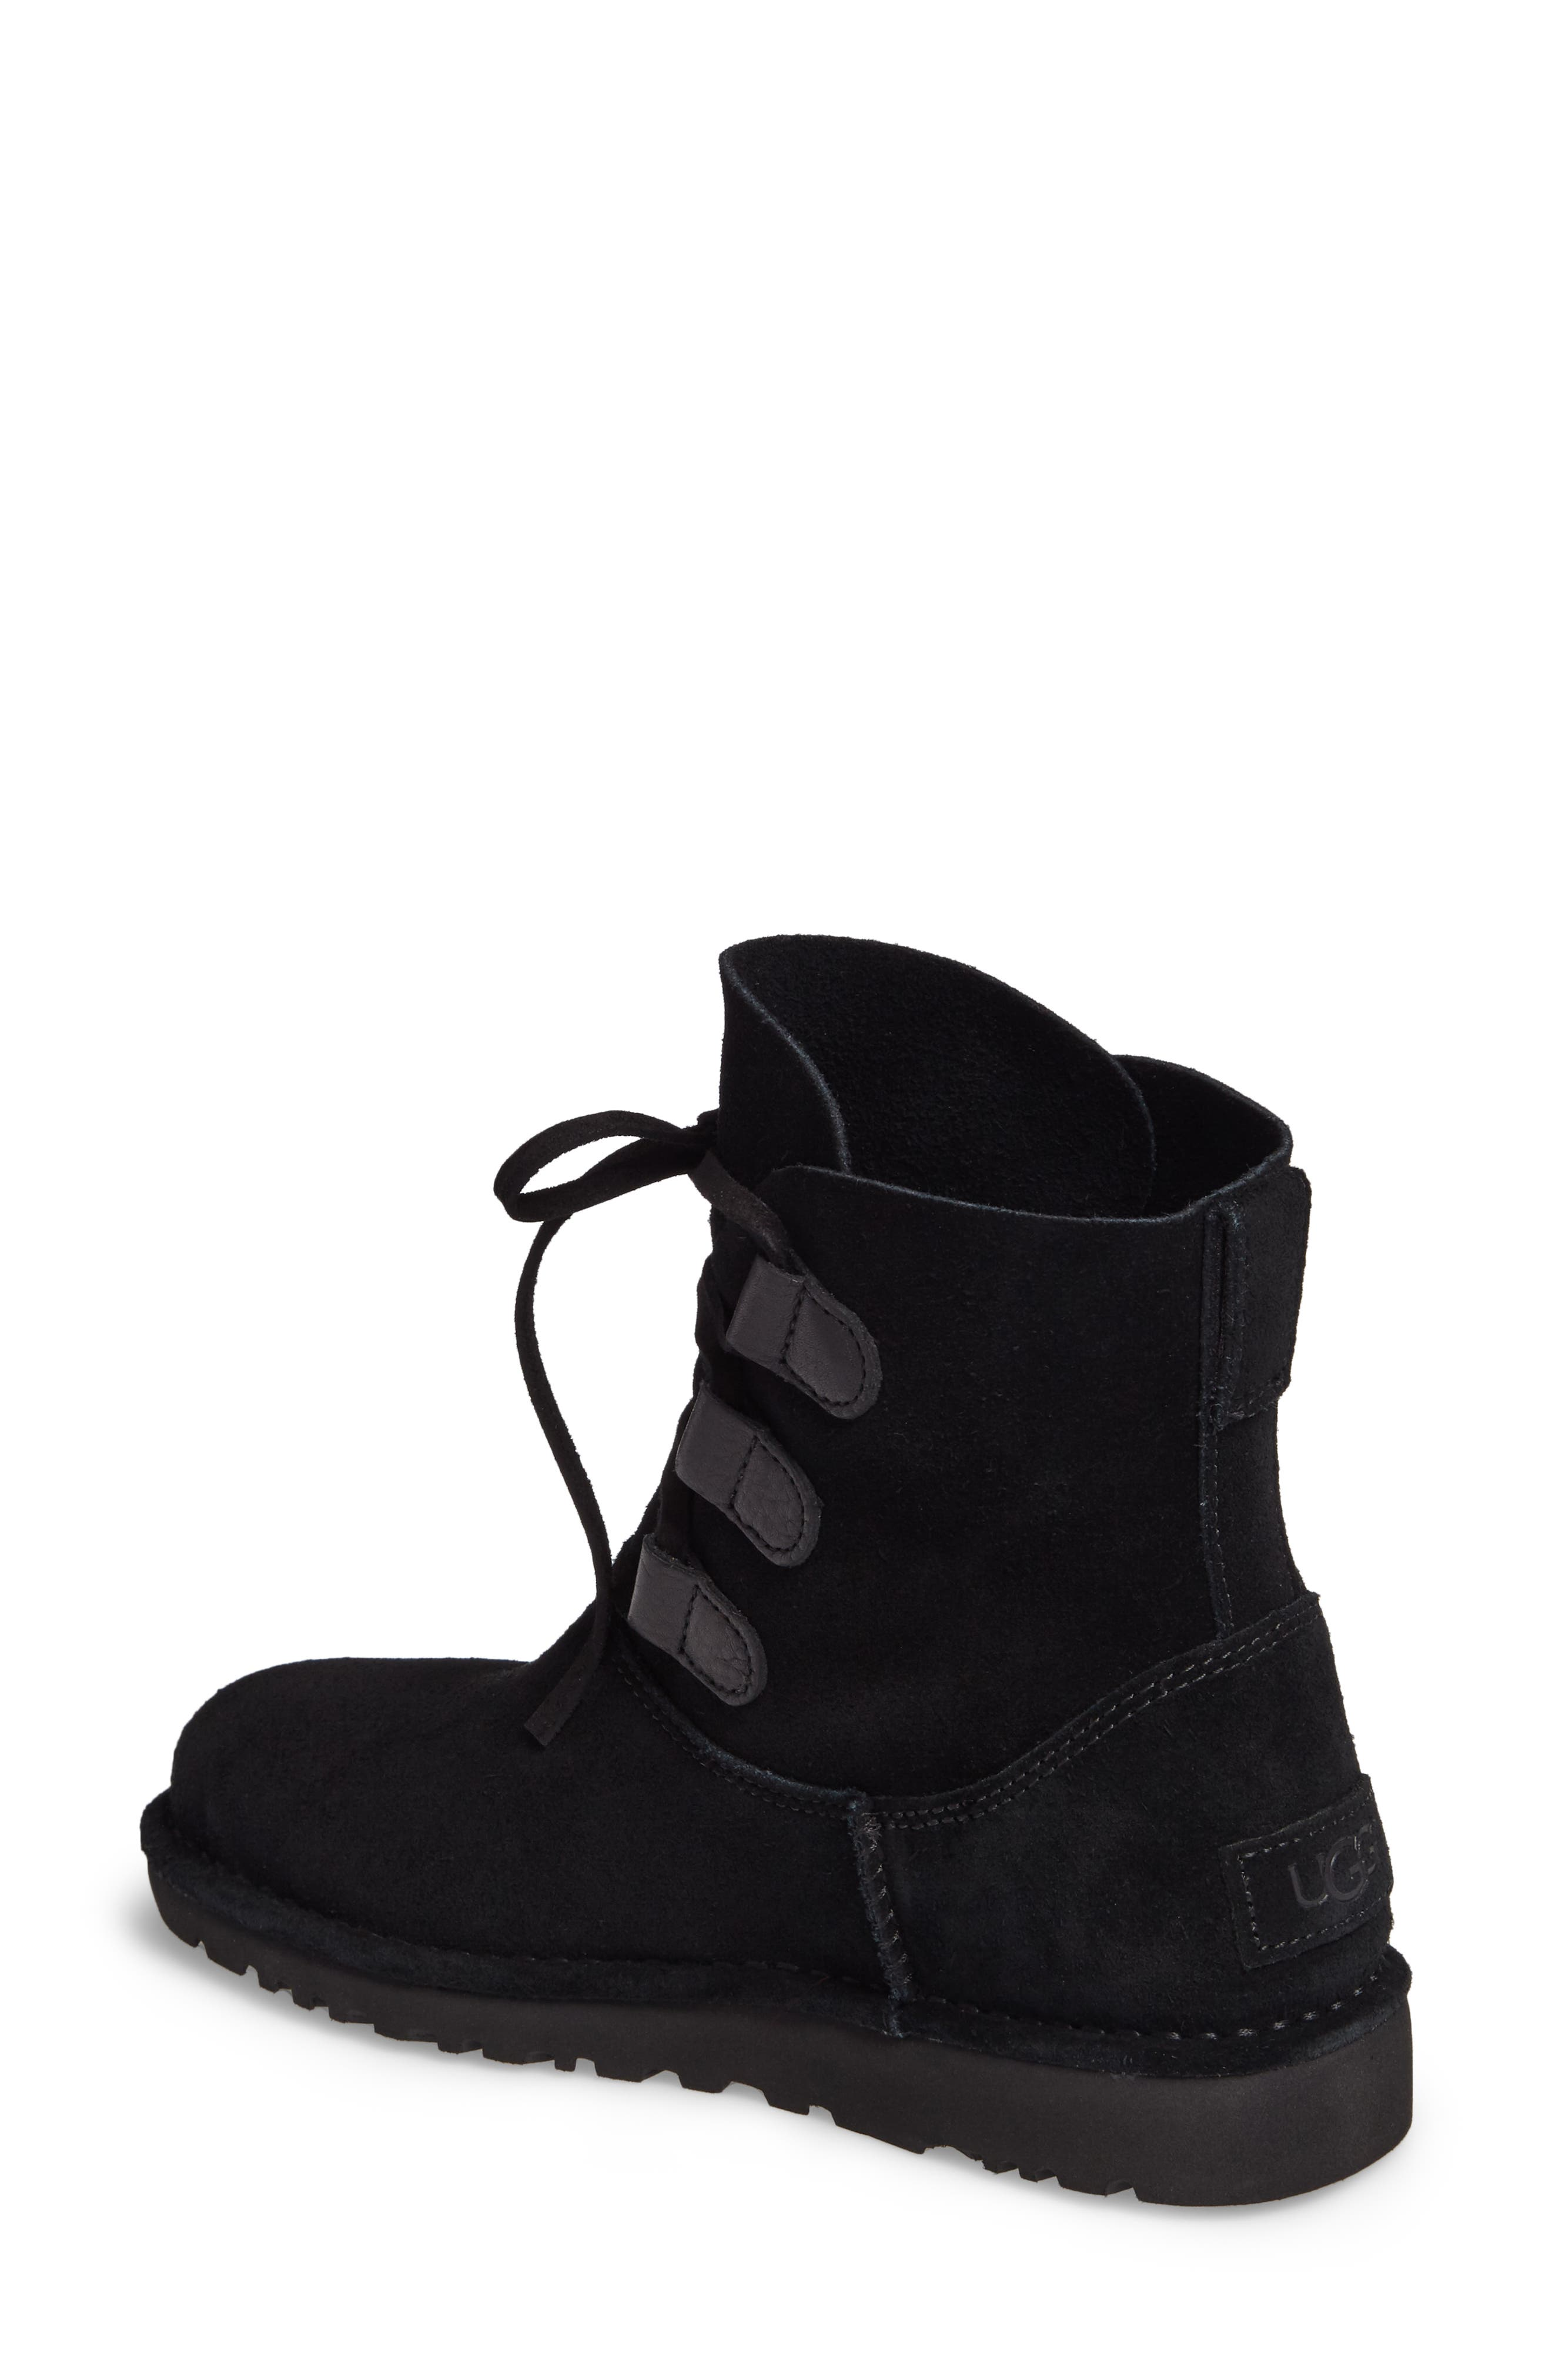 Elvi Short Boot,                             Alternate thumbnail 4, color,